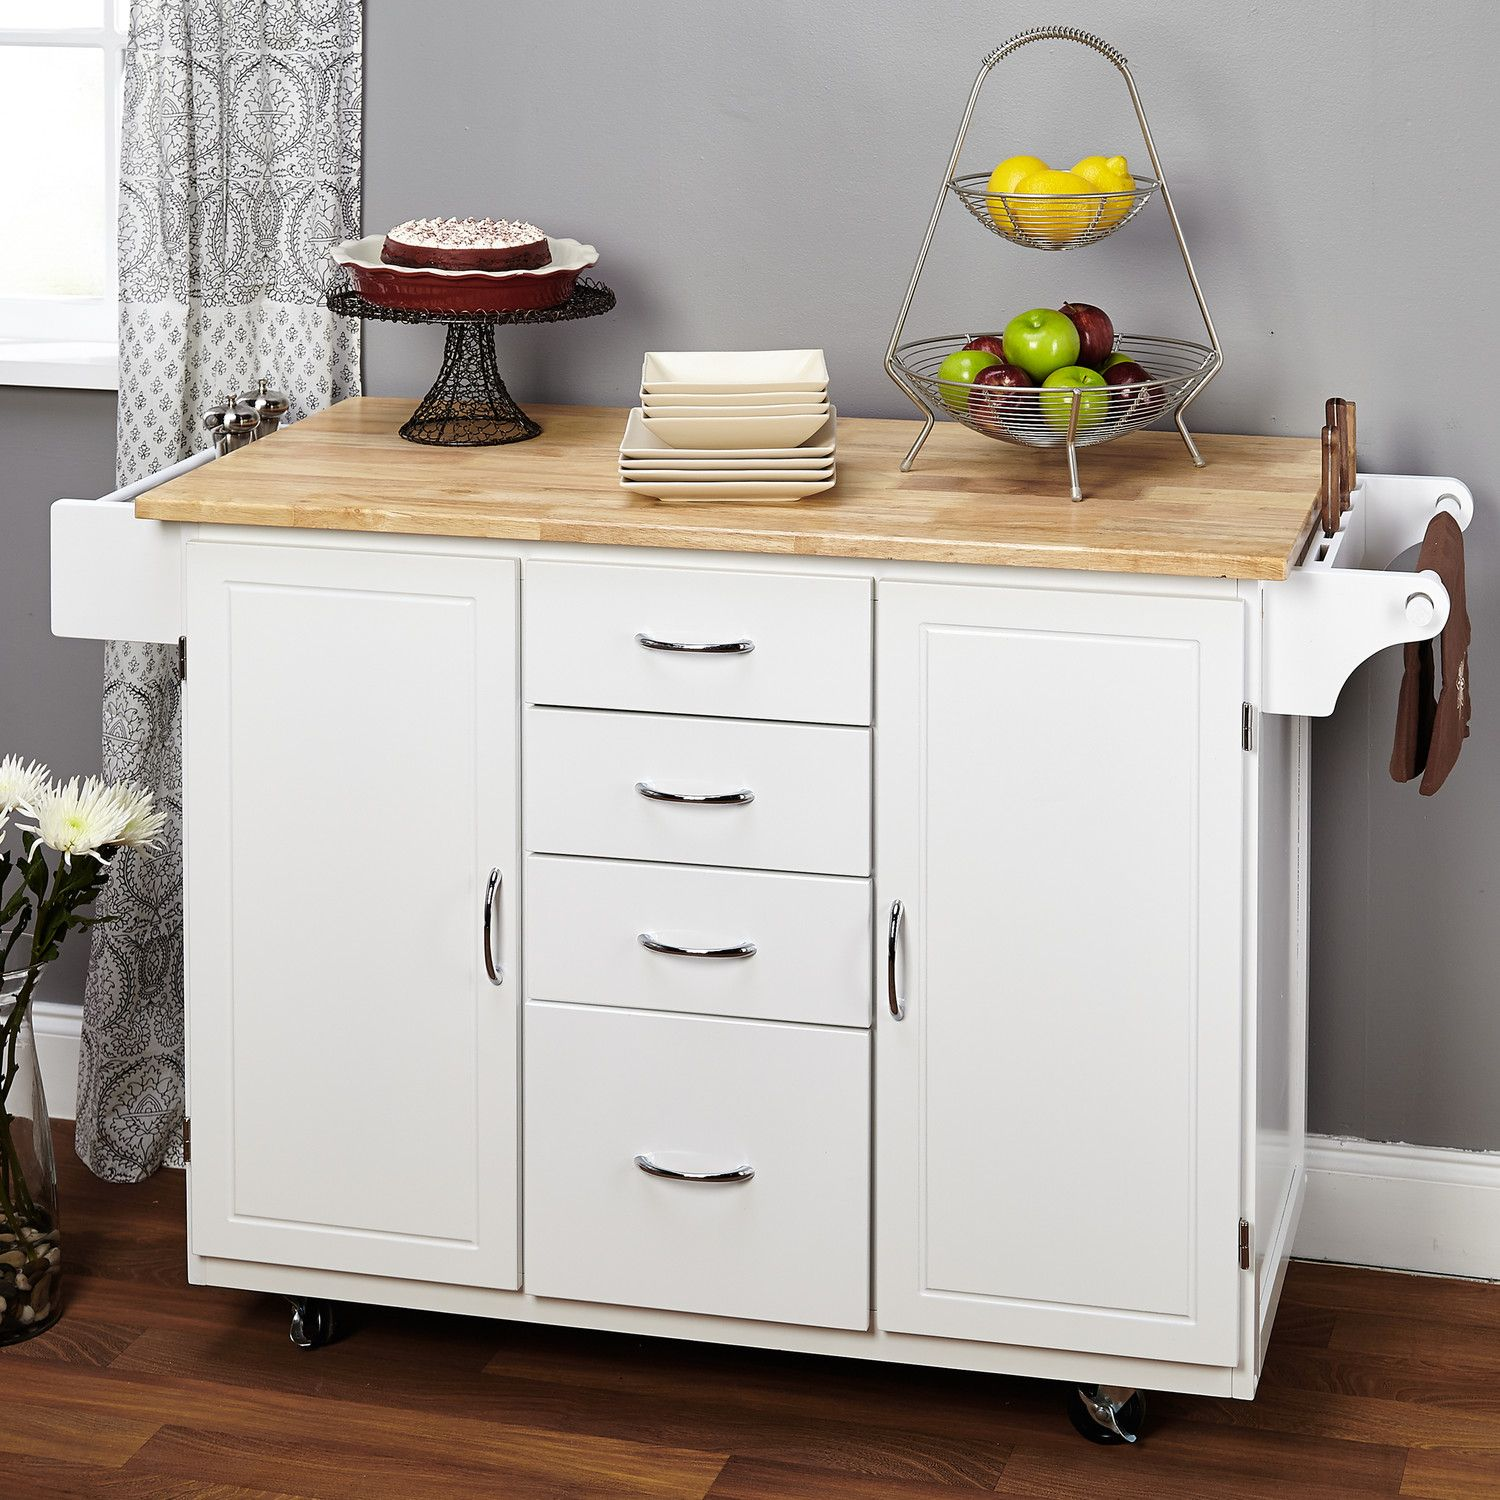 Tms cottage kitchen island great trash can and kid dishes storage